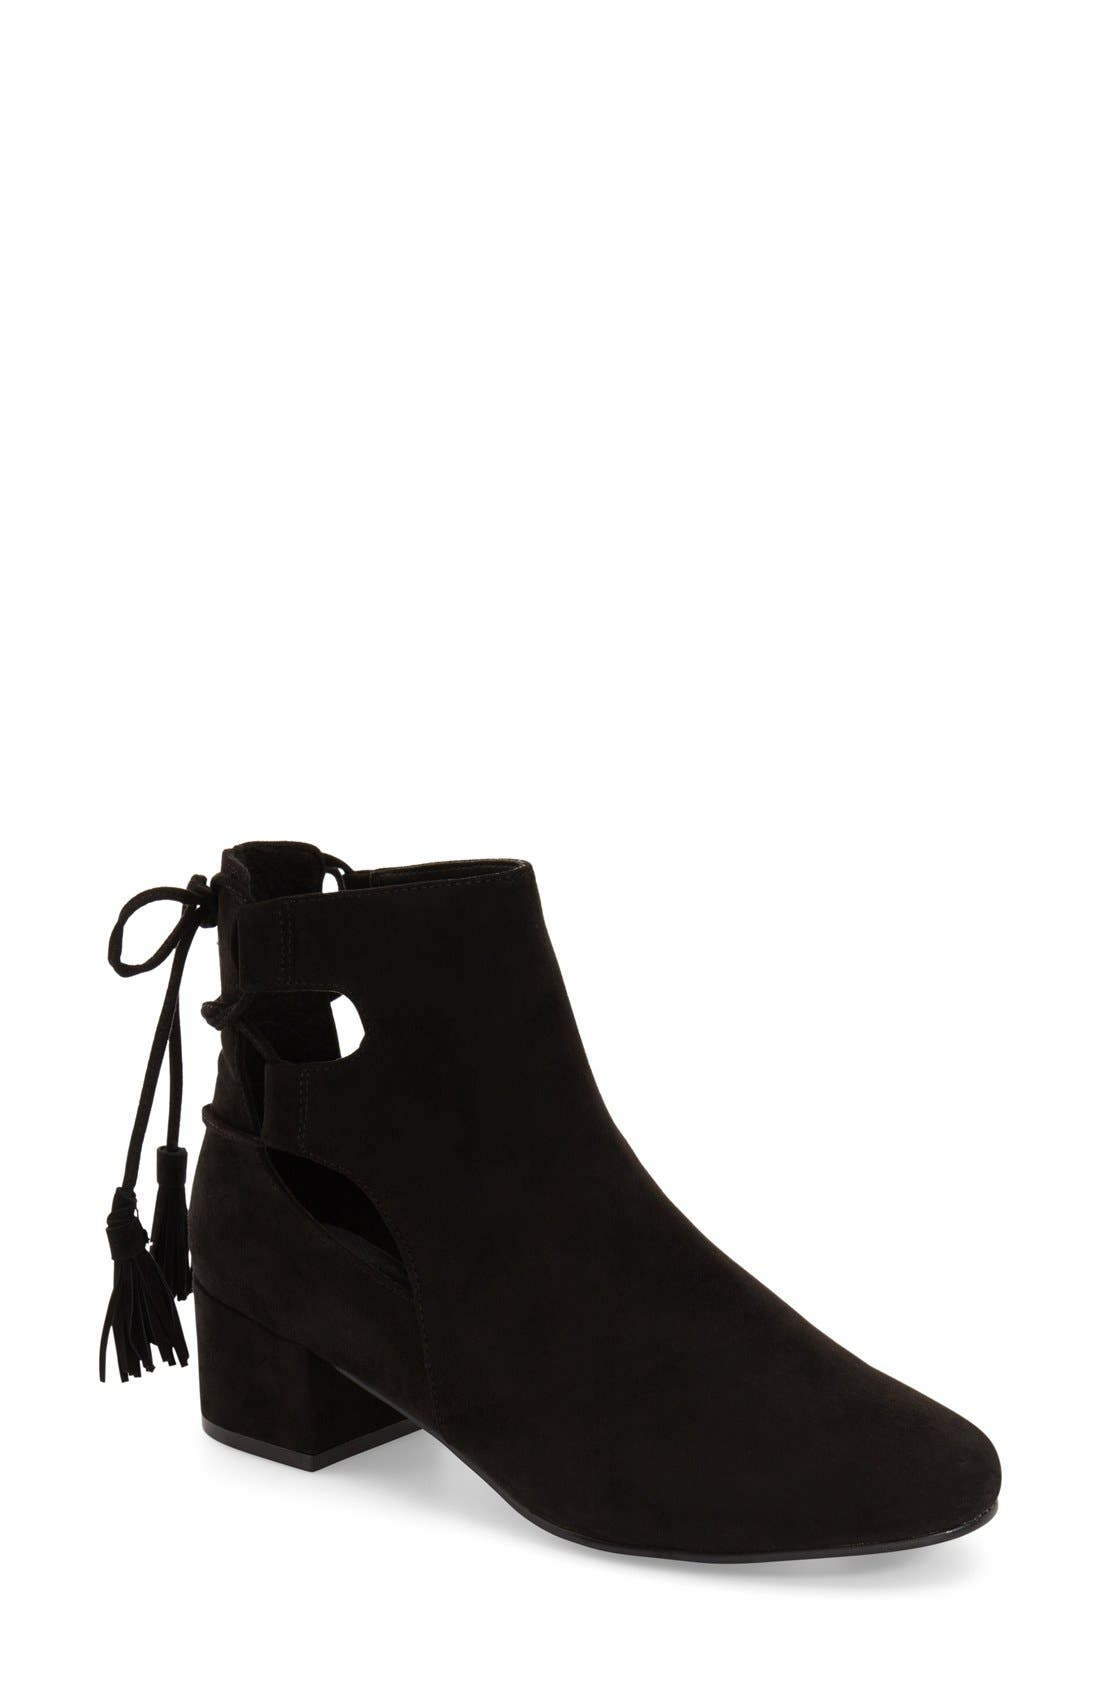 Alternate Image 1 Selected - Topshop 'Kimble' Lace-Up Suede Boot (Women)